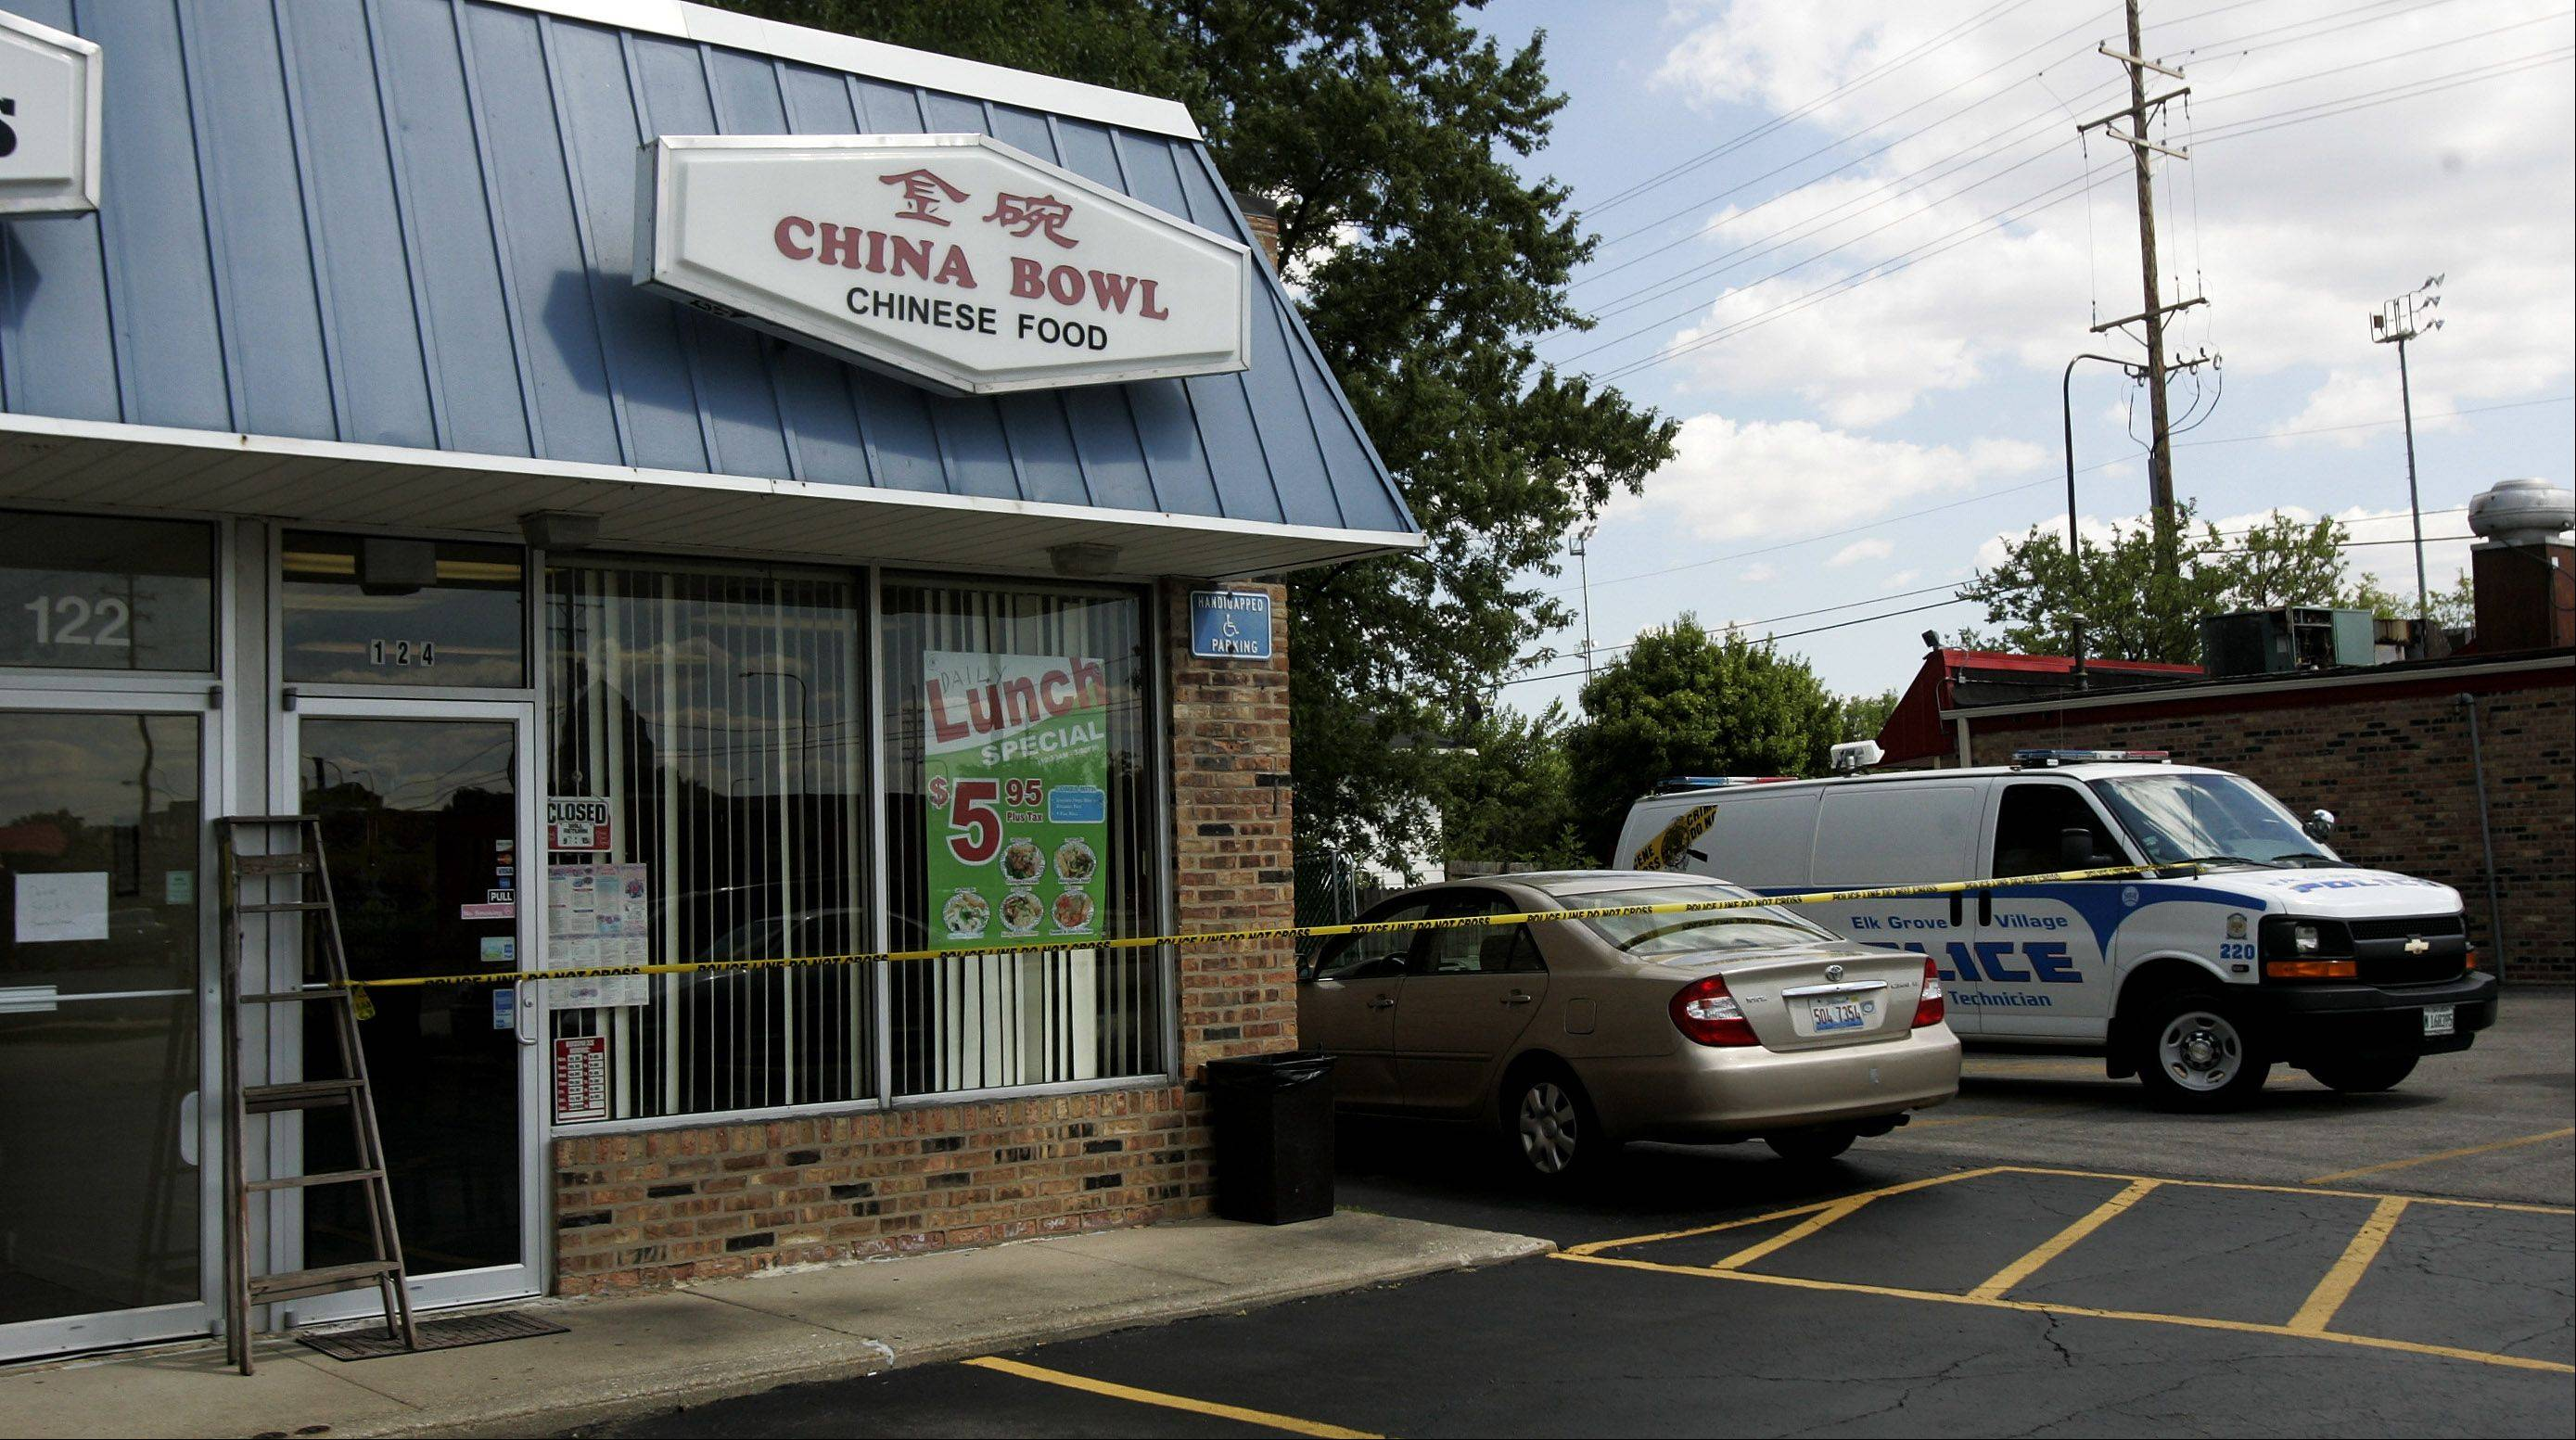 Elk Grove Village police investigate the scene where three people were injured during a fight behind a Chinese restaurant in the Turner Plaza strip mall Monday afternoon. Authorities said one man is in custody.